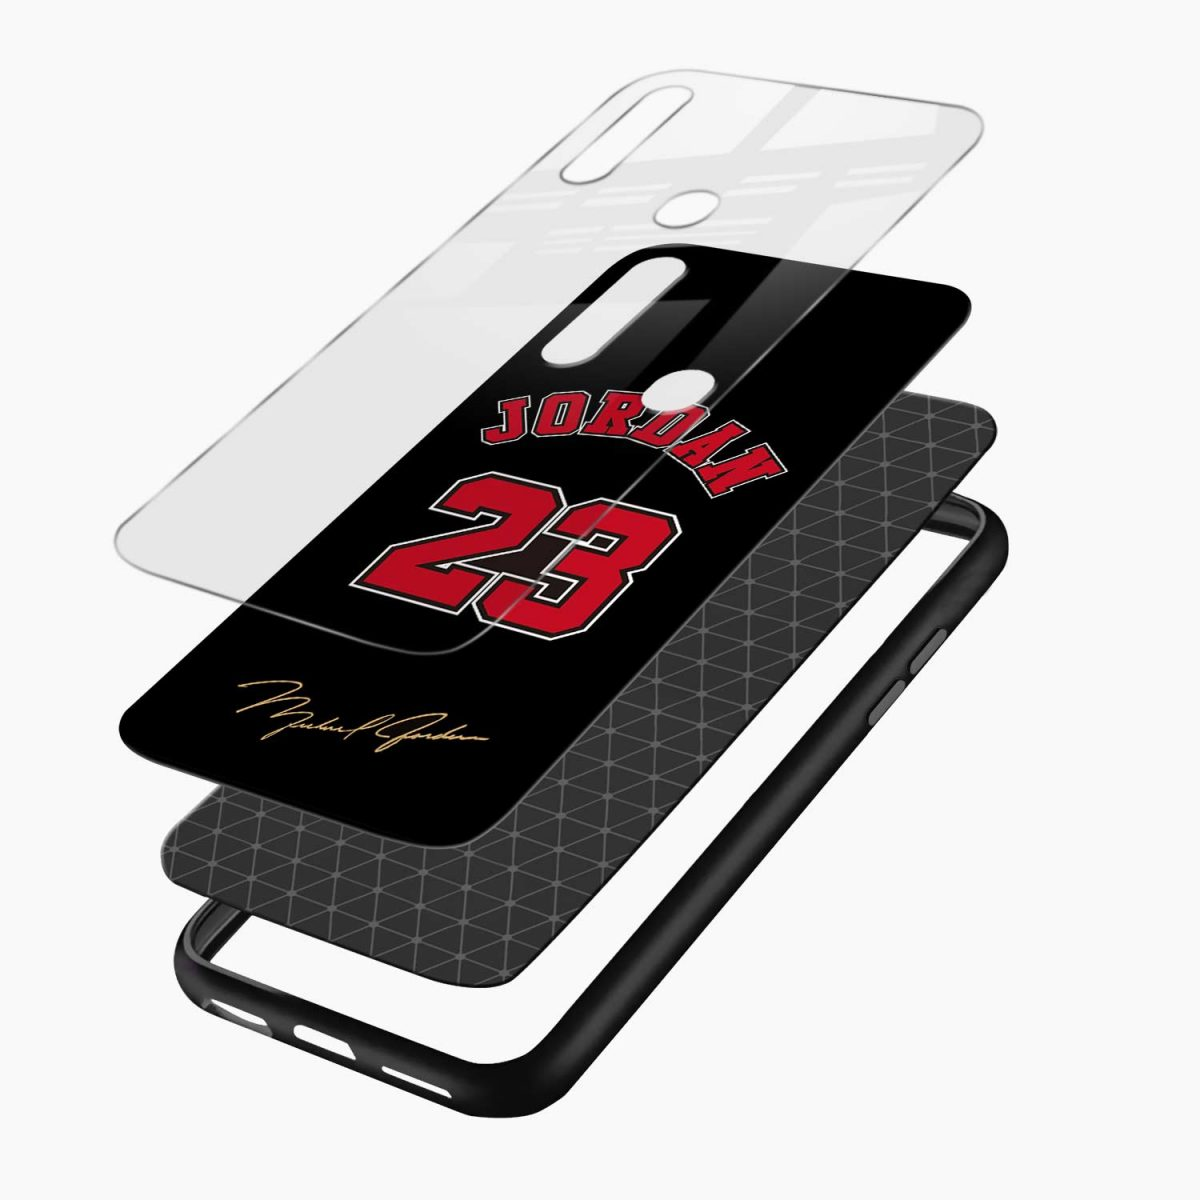 jordan 23 layers view oppo a31 back cover